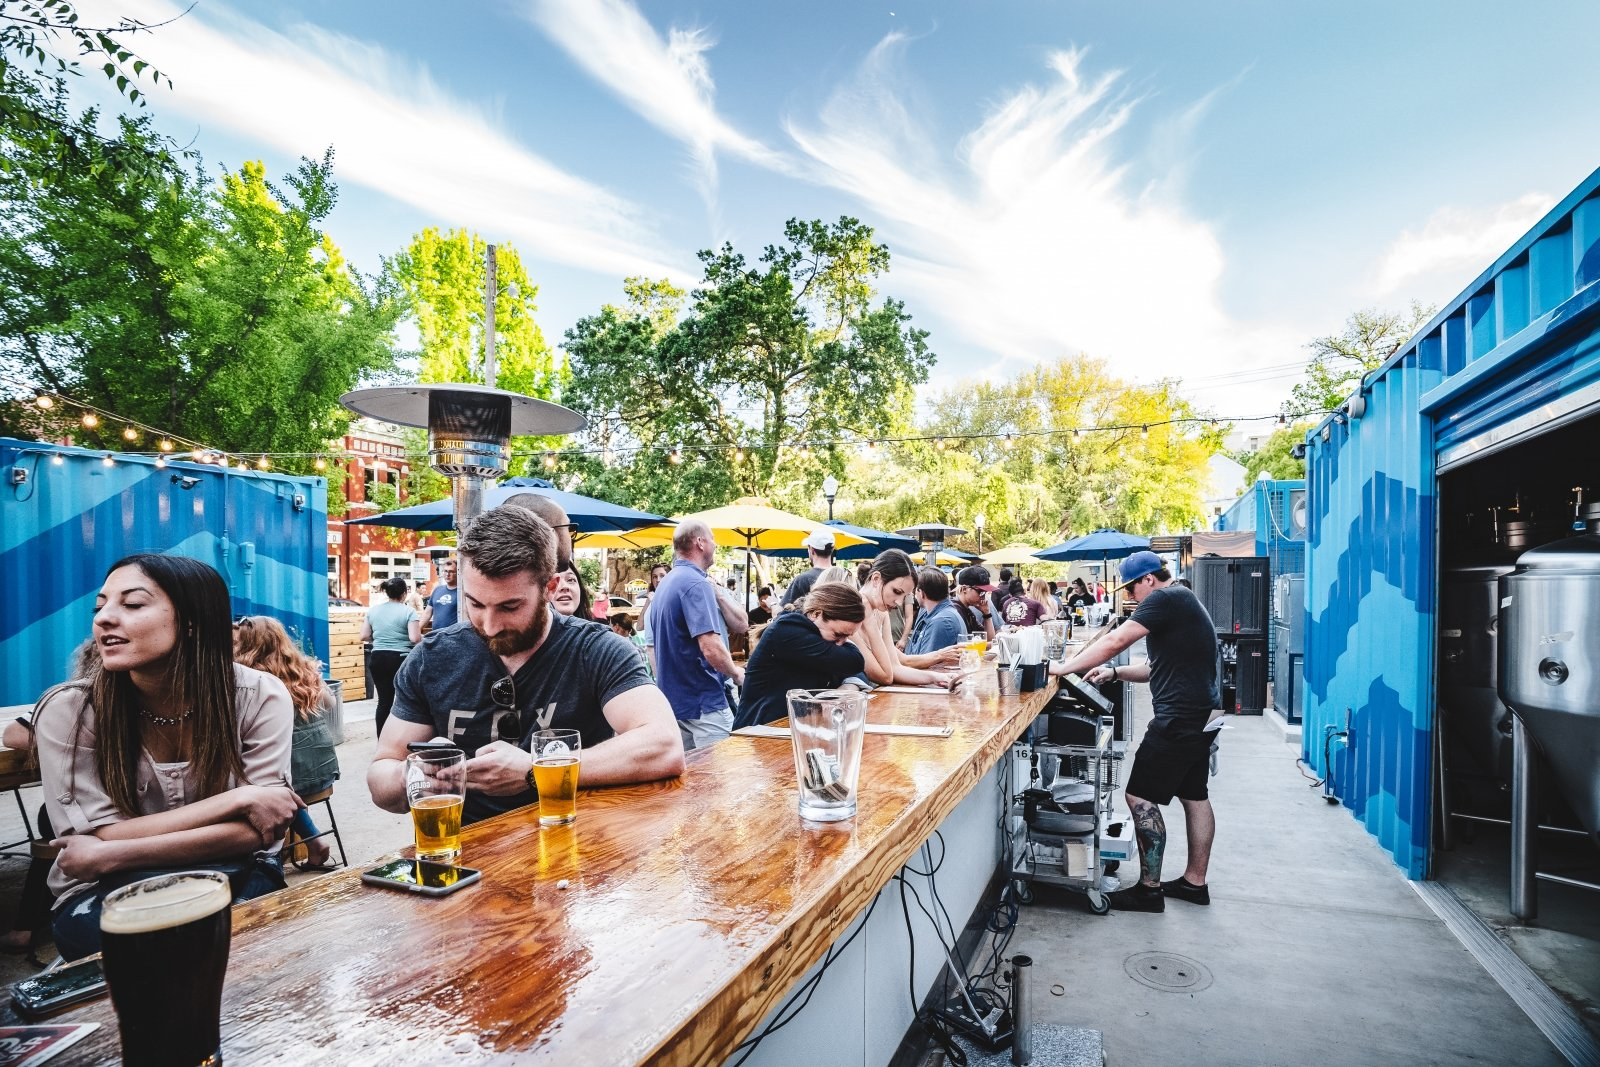 Golden Road Brewing Company's 8,000-square-foot beer garden in midtown (Photo courtesy of Golden Road Brewing Company)